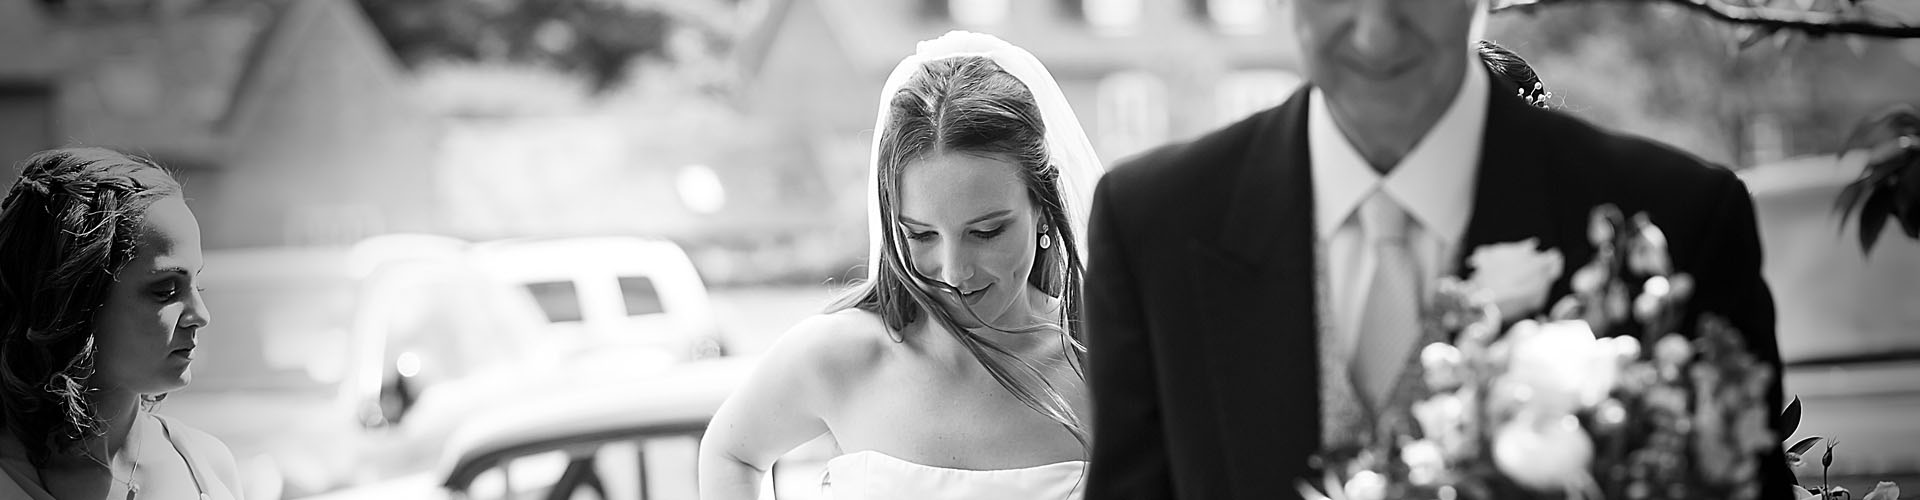 wedding_photographer_london_6